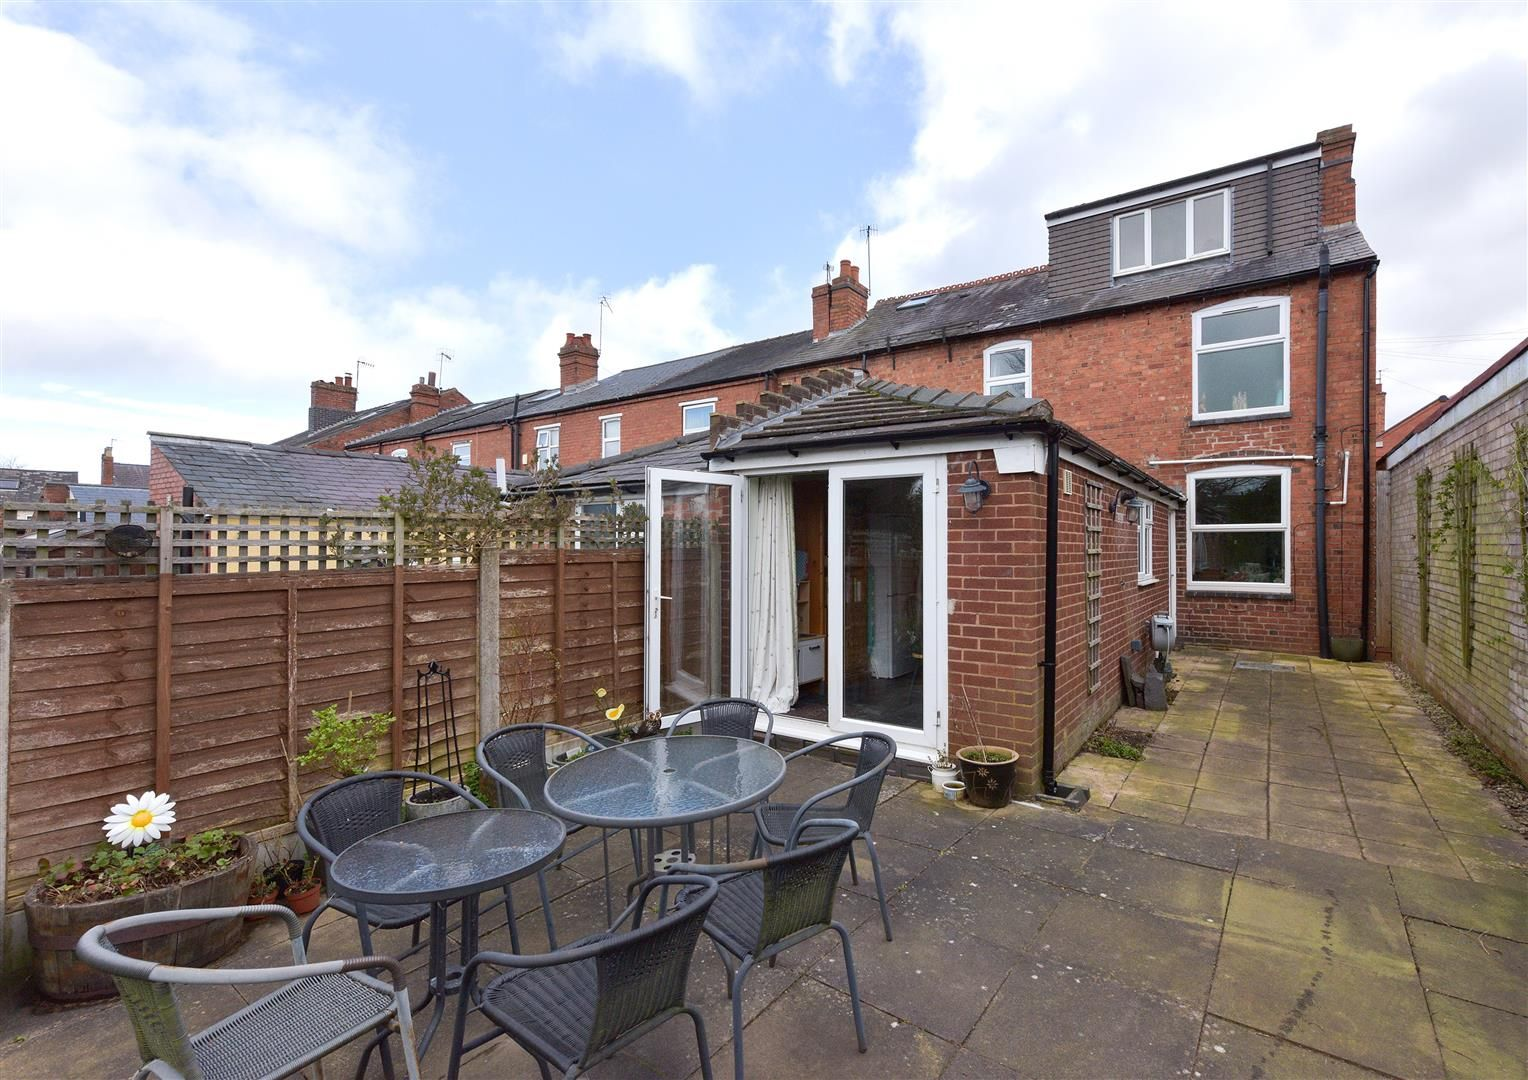 3 bed end-of-terrace for sale 19